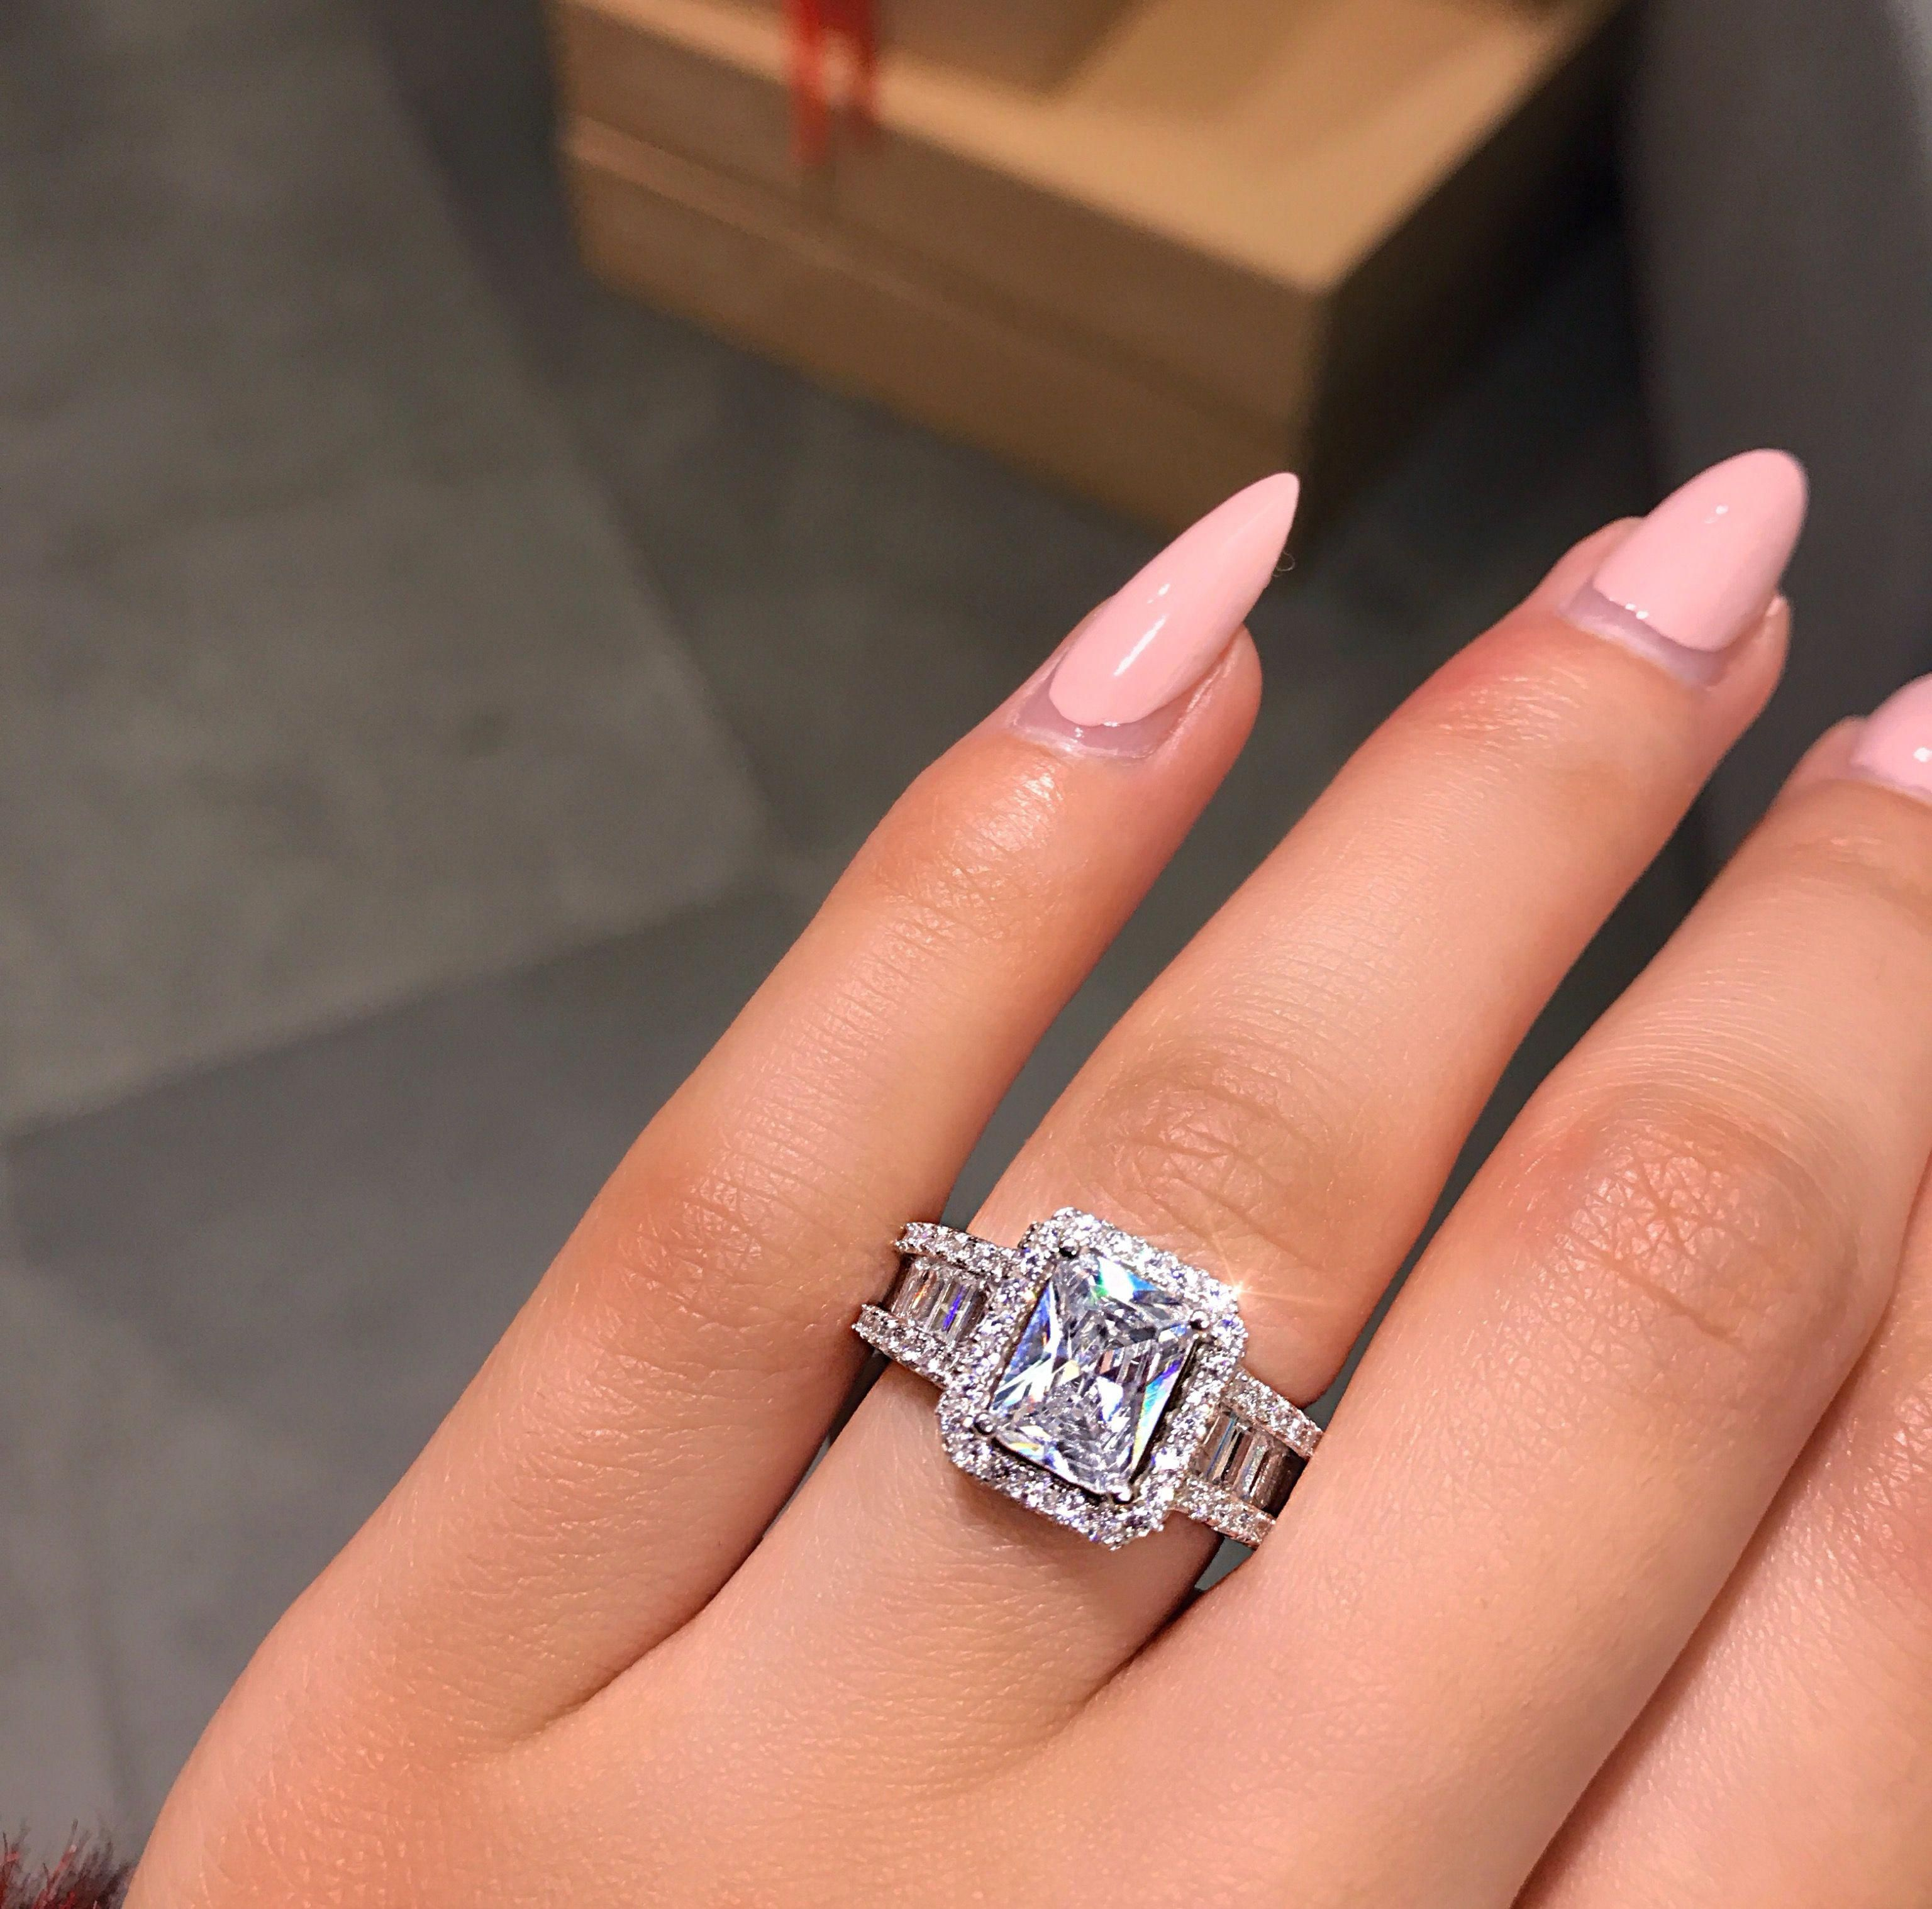 20+ Womens vintage rose gold wedding band ideas in 2021